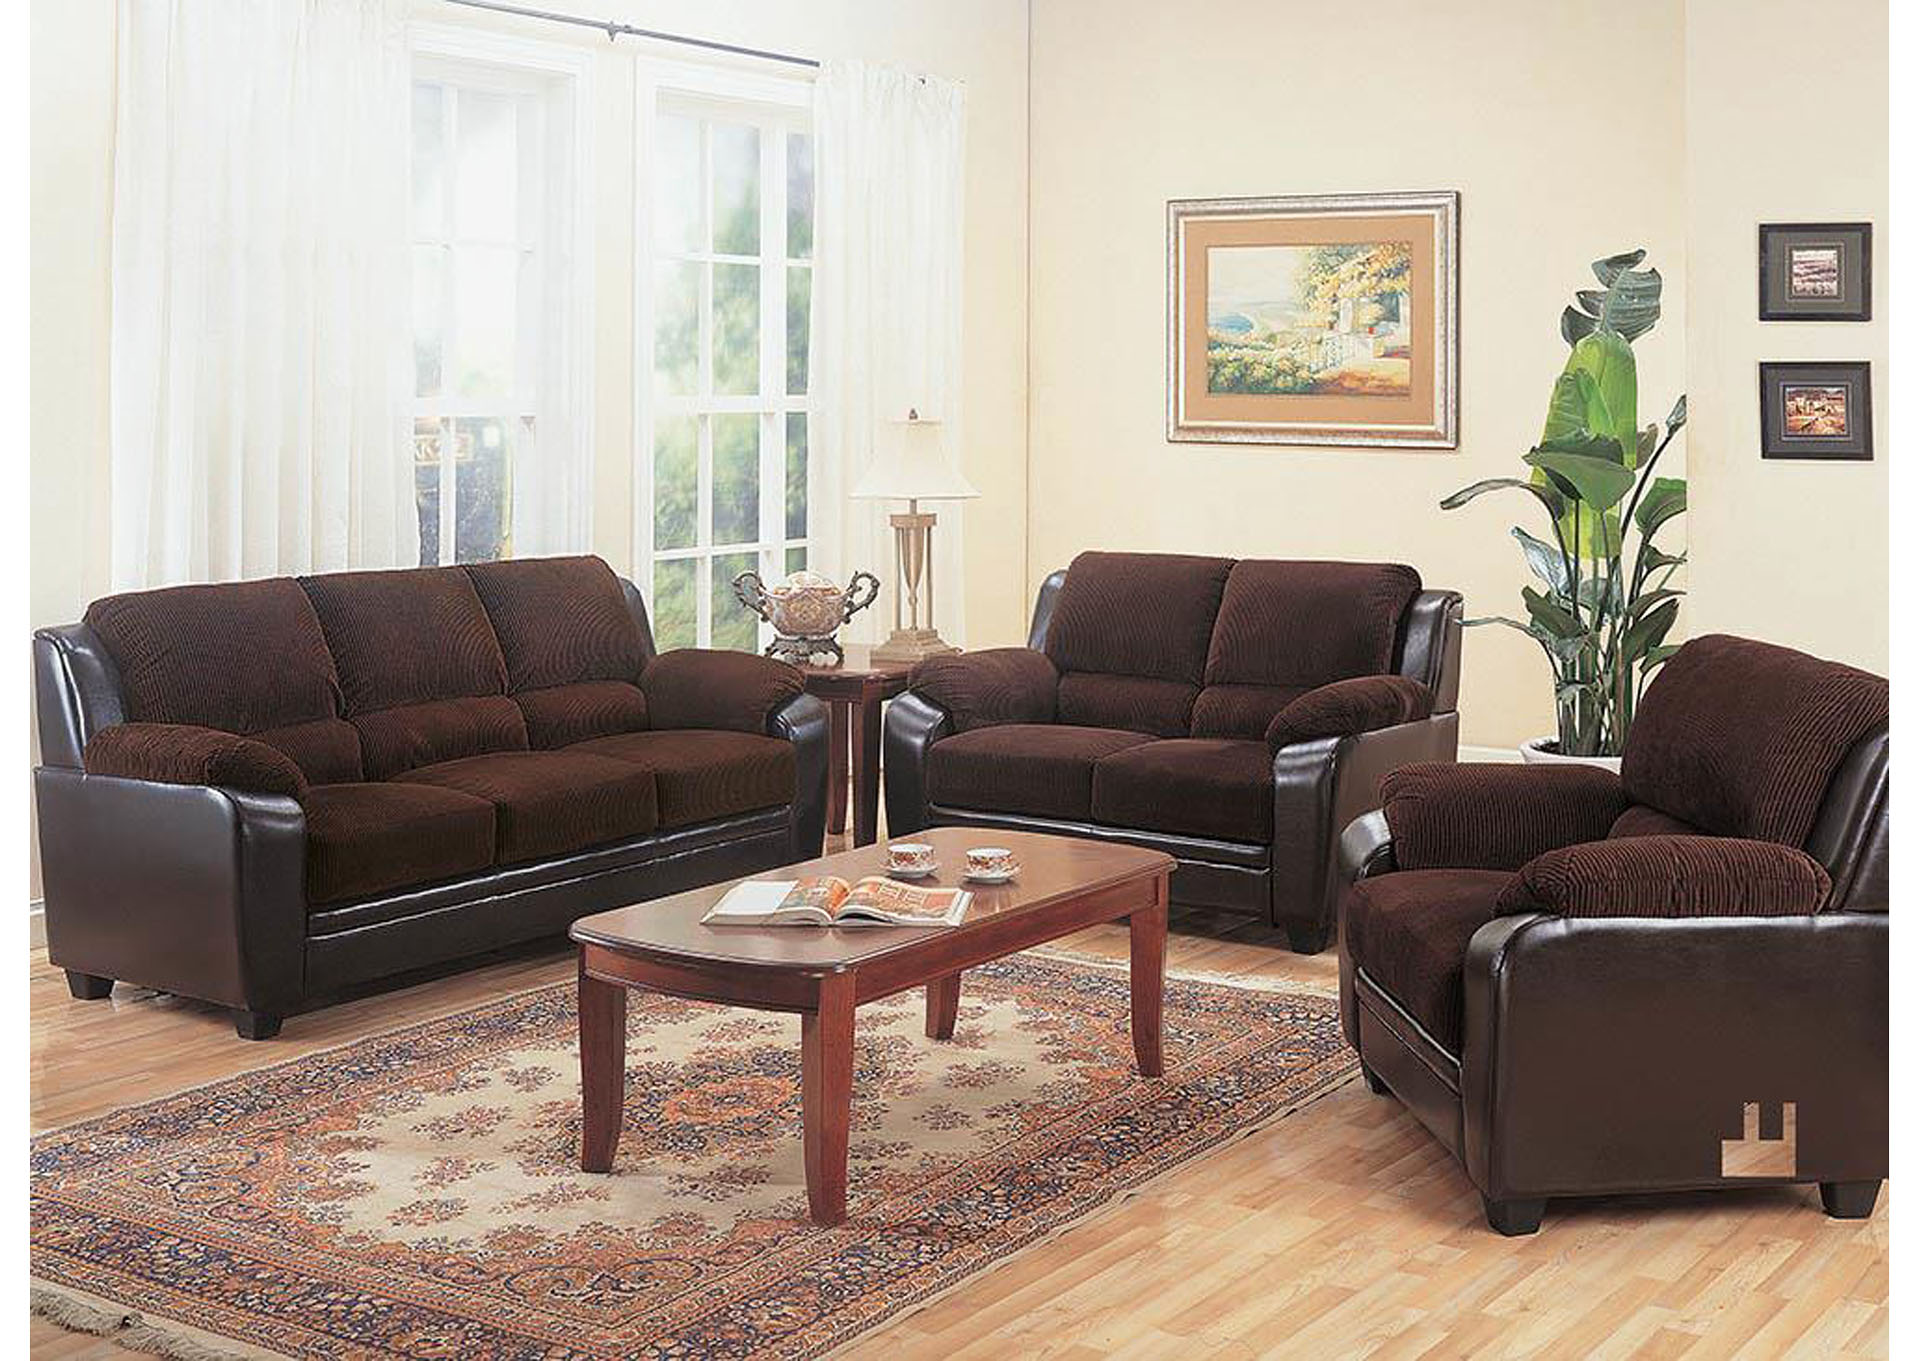 Monika Chocolate Love Seat,ABF Coaster Furniture